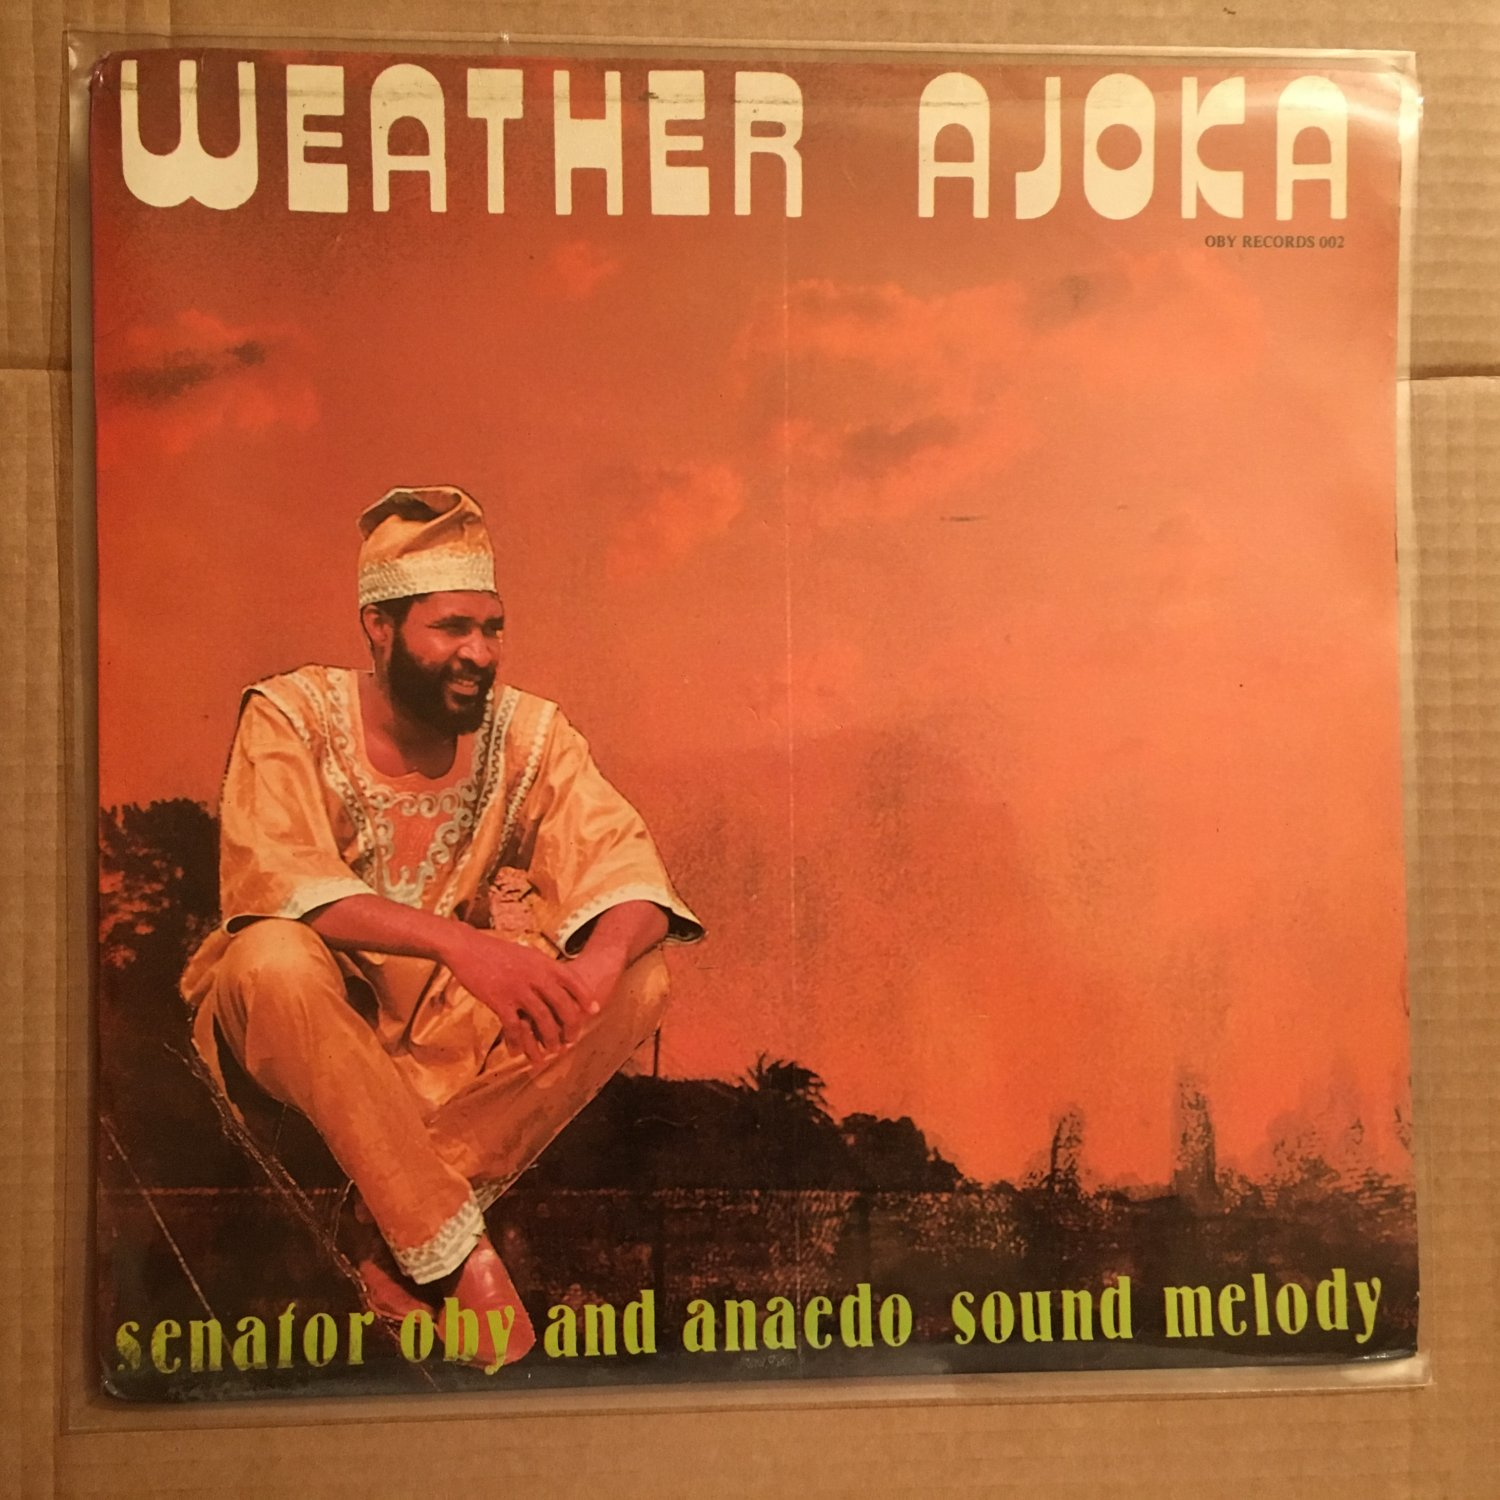 SENATOR OBY & ANAEDO SOUND MELODY LP weather ajoka NIGERIA HIGHLIFE mp3 LISTEN